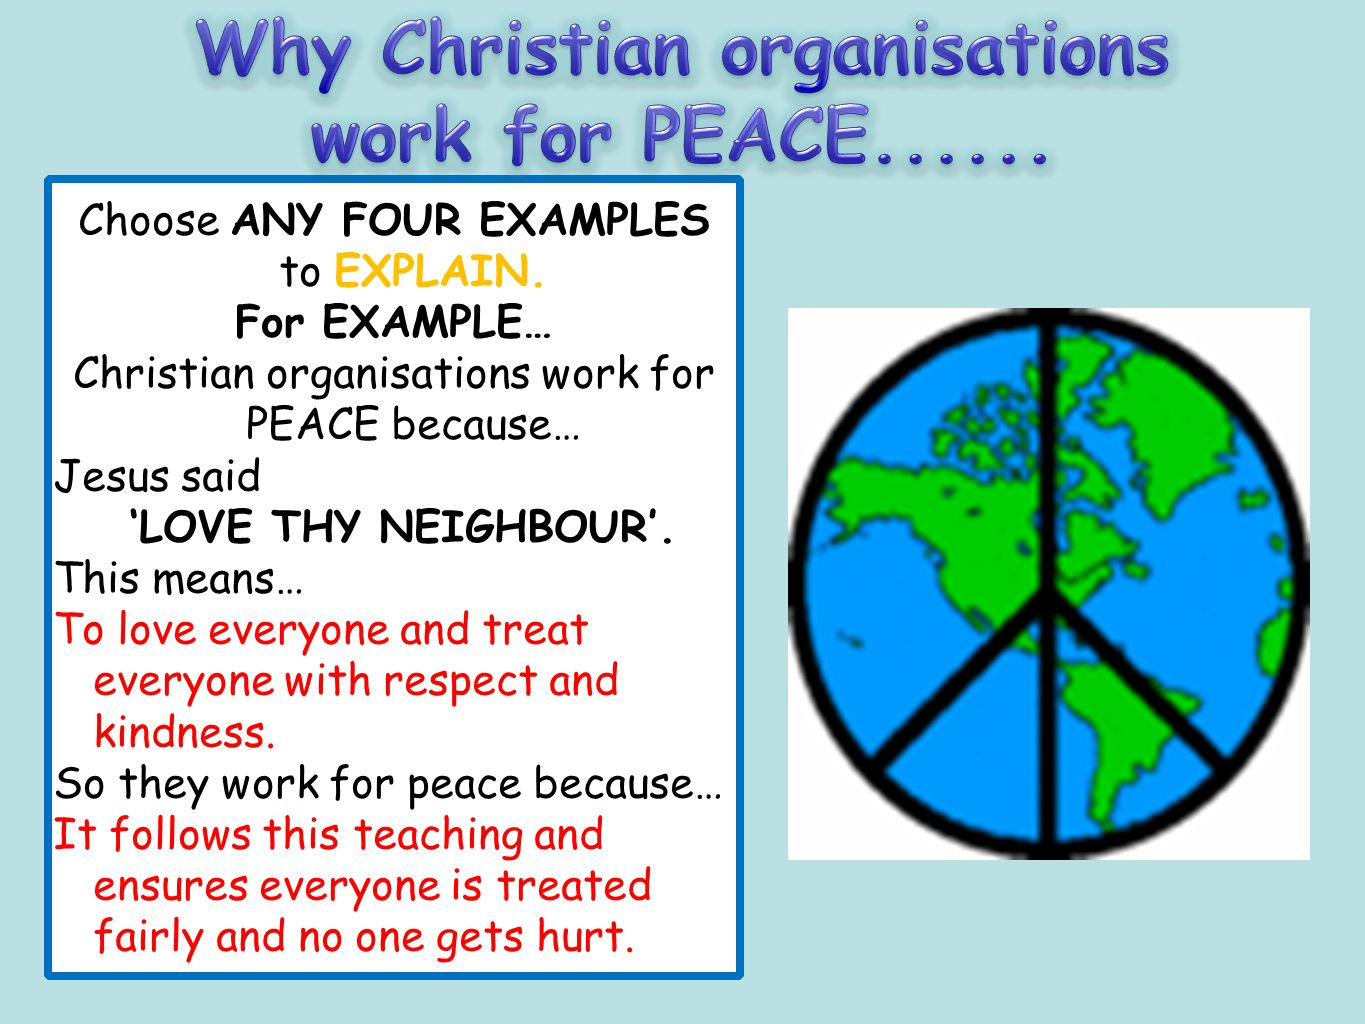 Why Christian organisations work for PEACE......